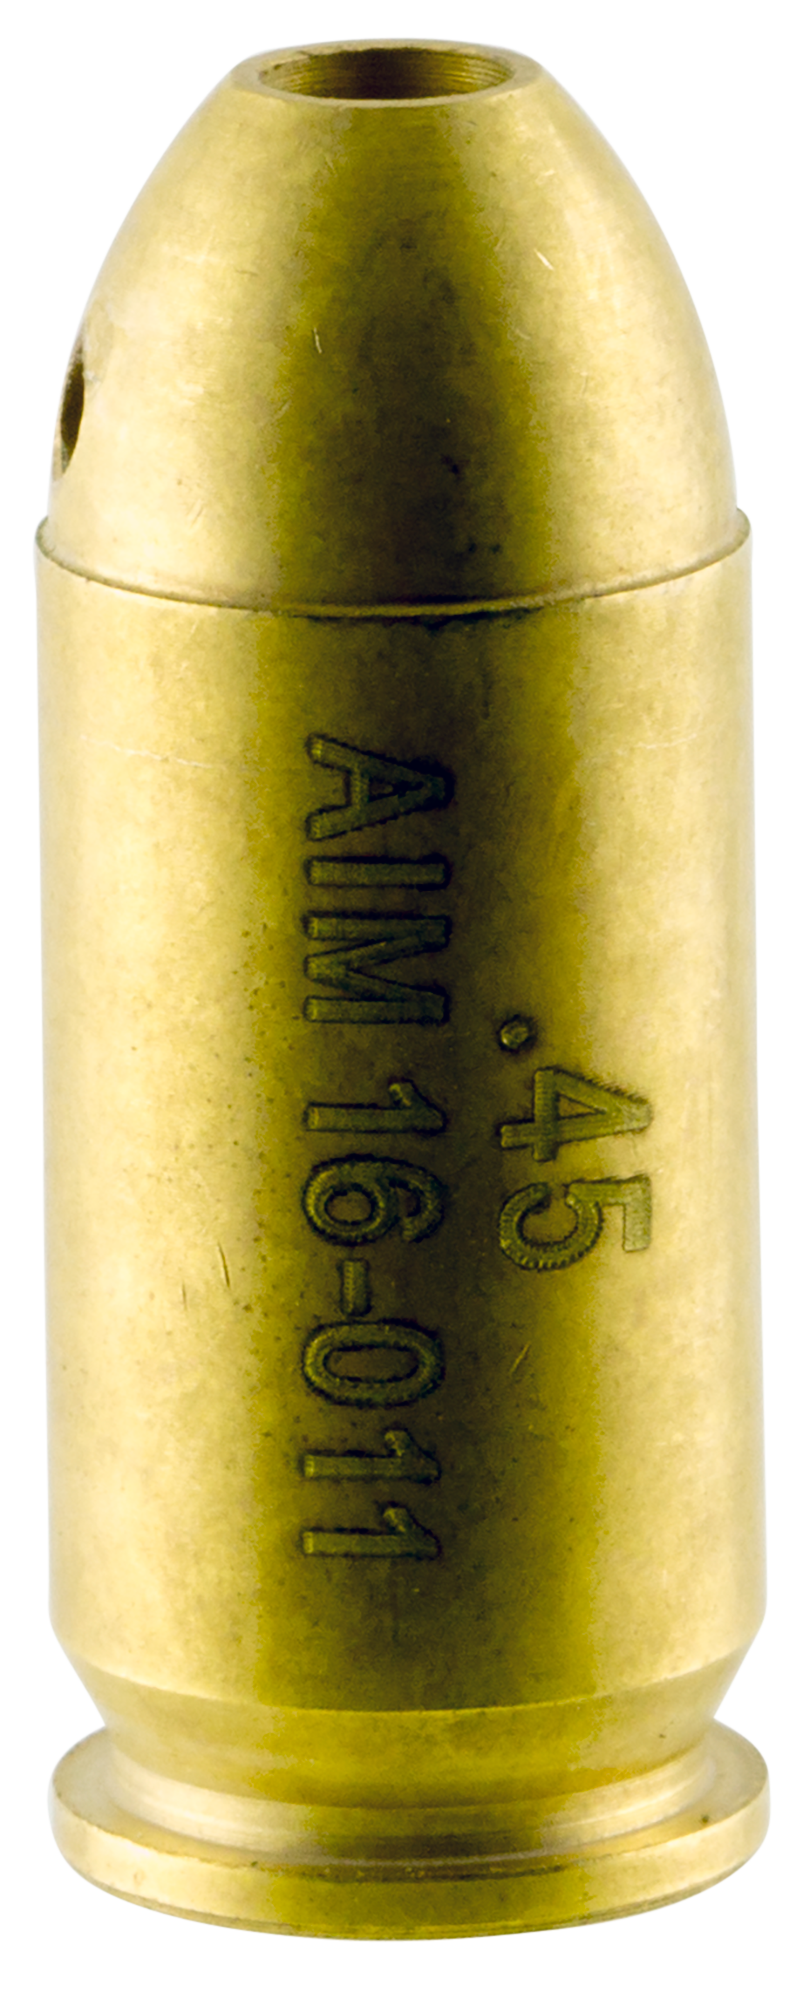 Aim Sports PJBS45 45 Bore Sight Laser Boresighter Cartridge 45 ACP Chamber Brass